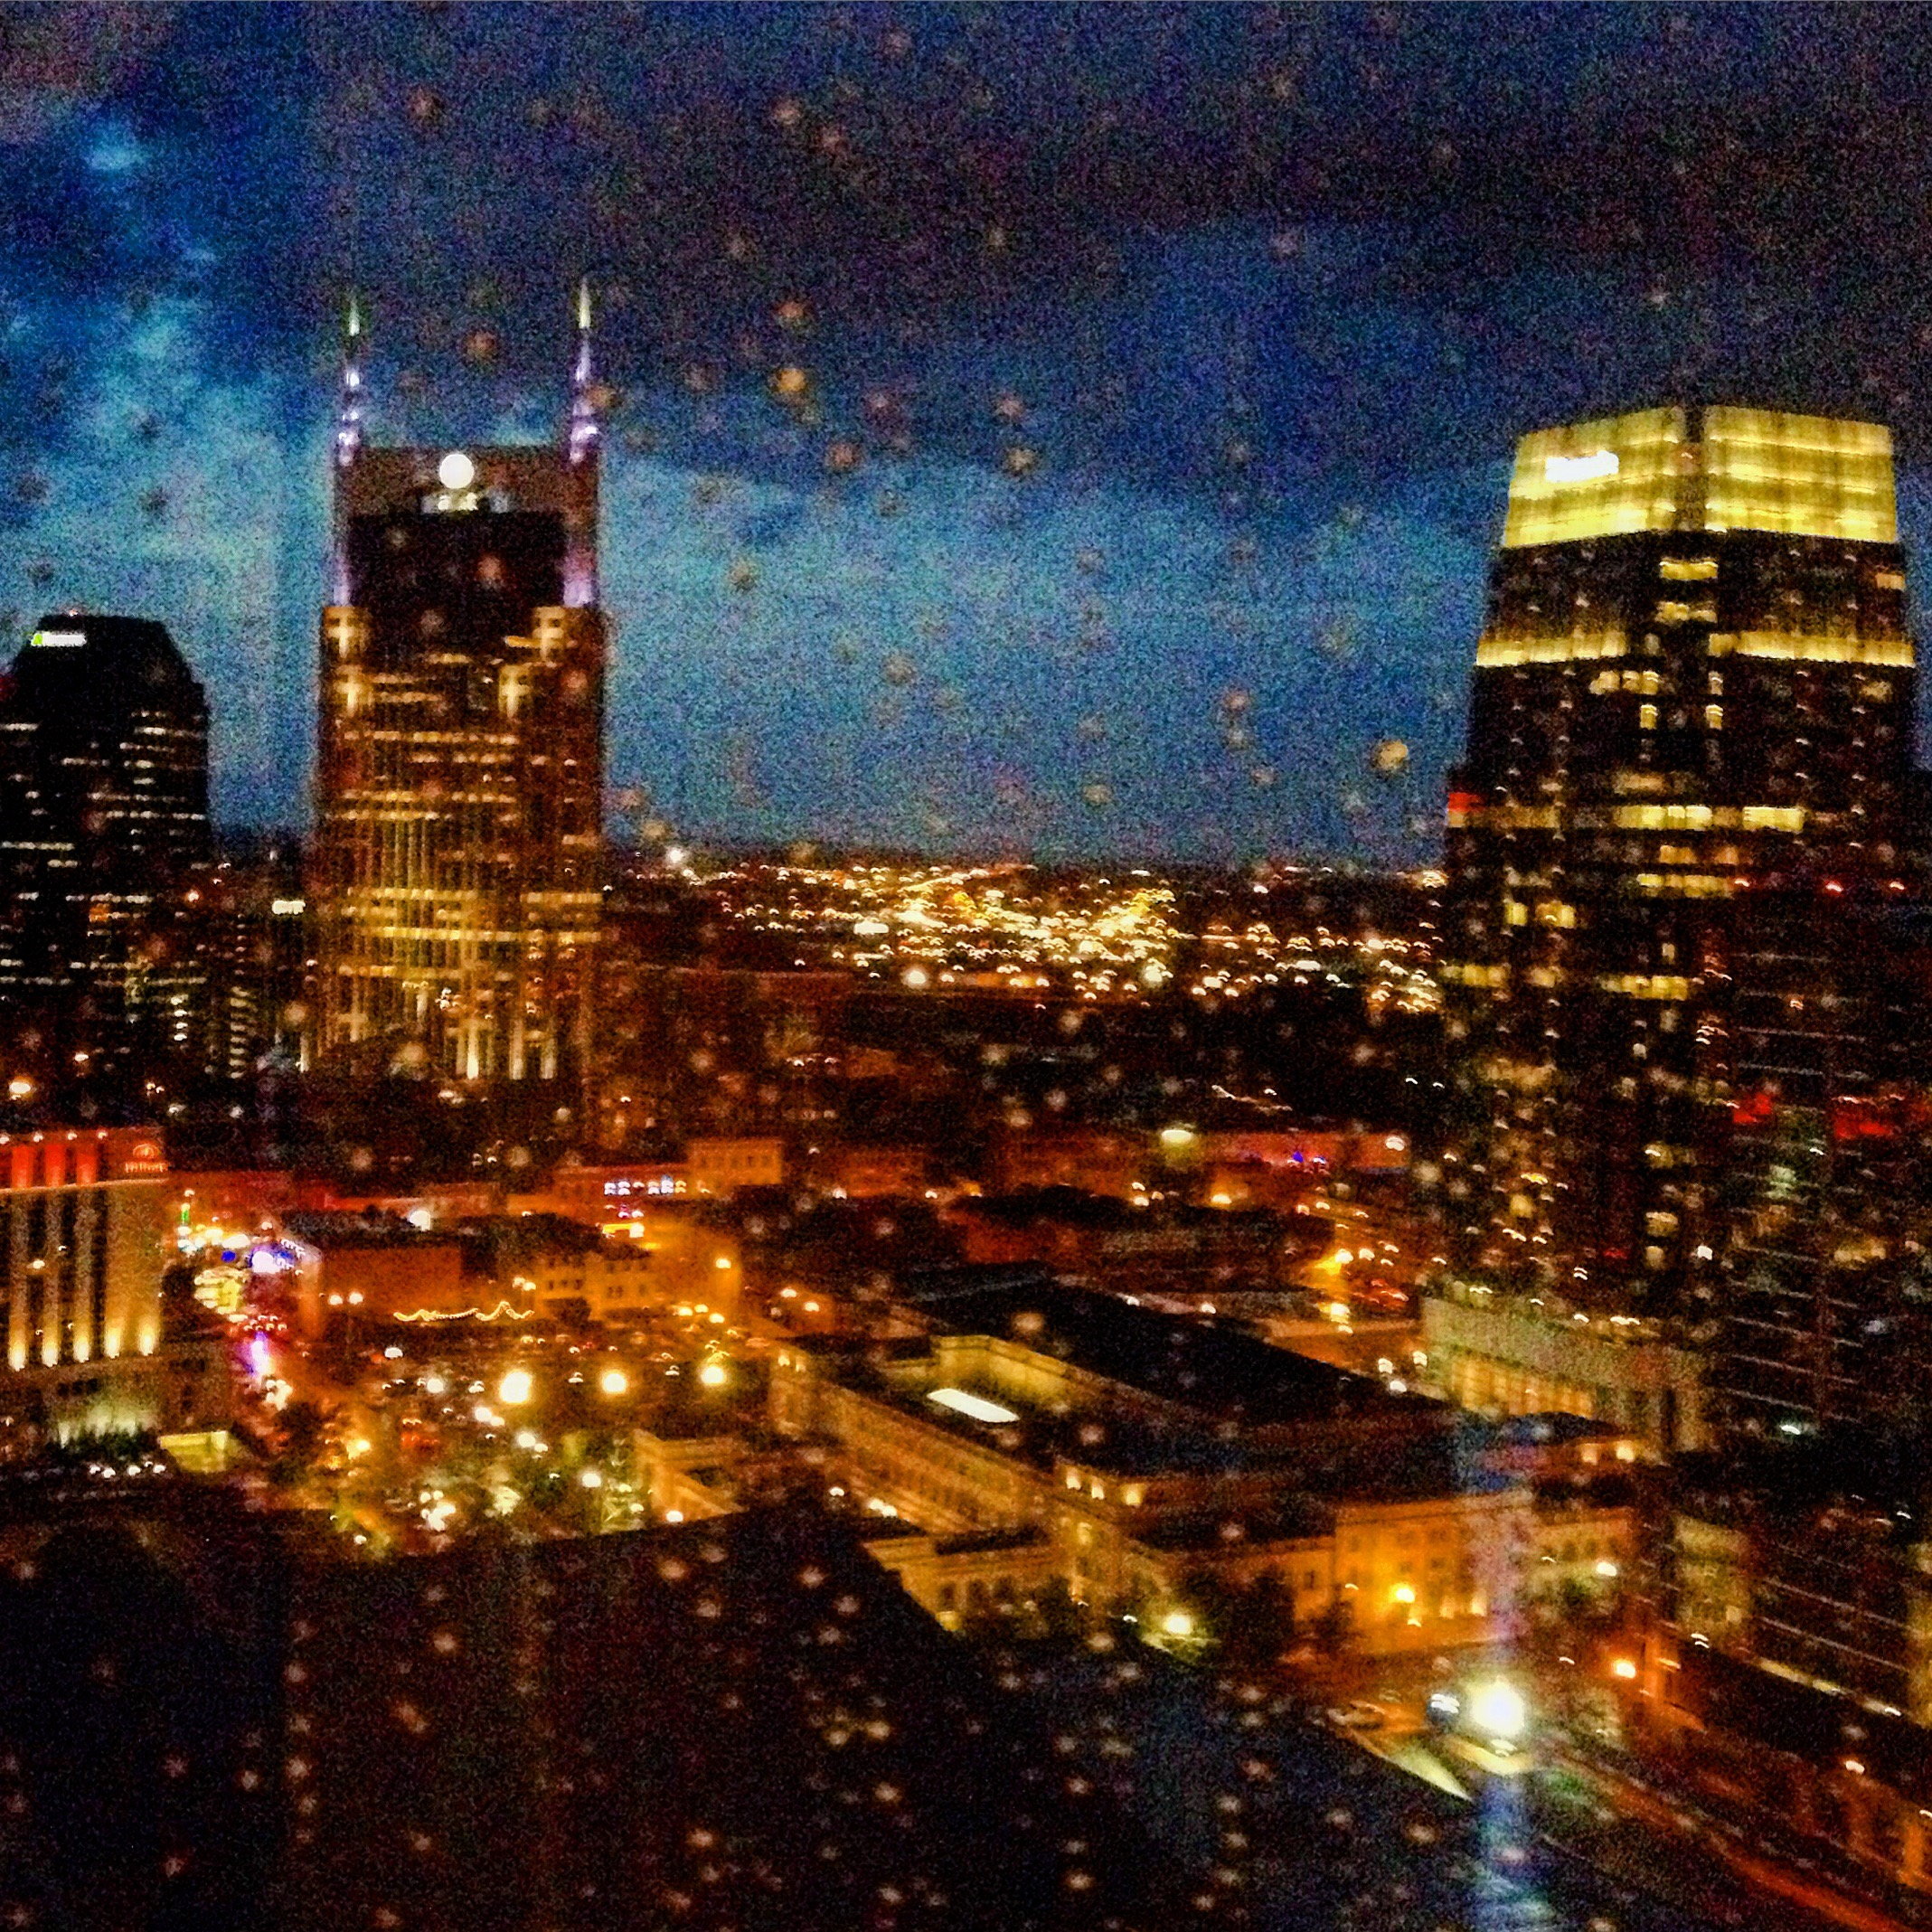 Beautiful Nashville skyline at night from my hotel room on a stormy evening.